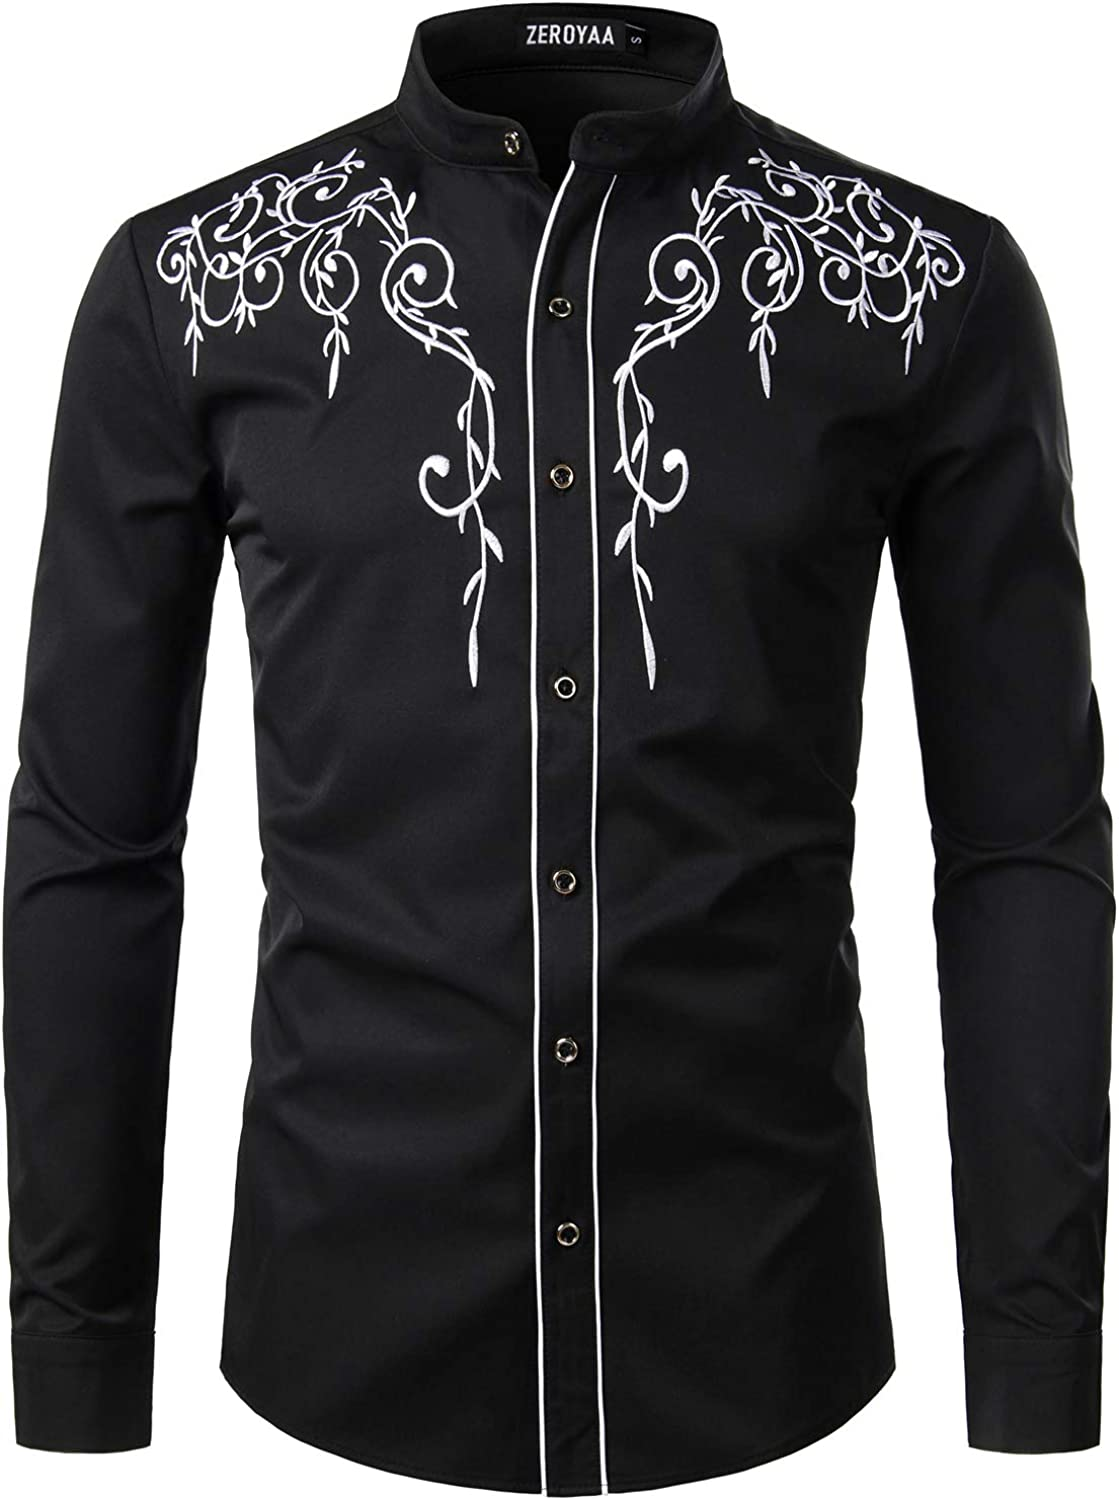 ZEROYAA Men's Floral Embroidery Slim Fit Long Sleeve Band Collar Dress Shirts